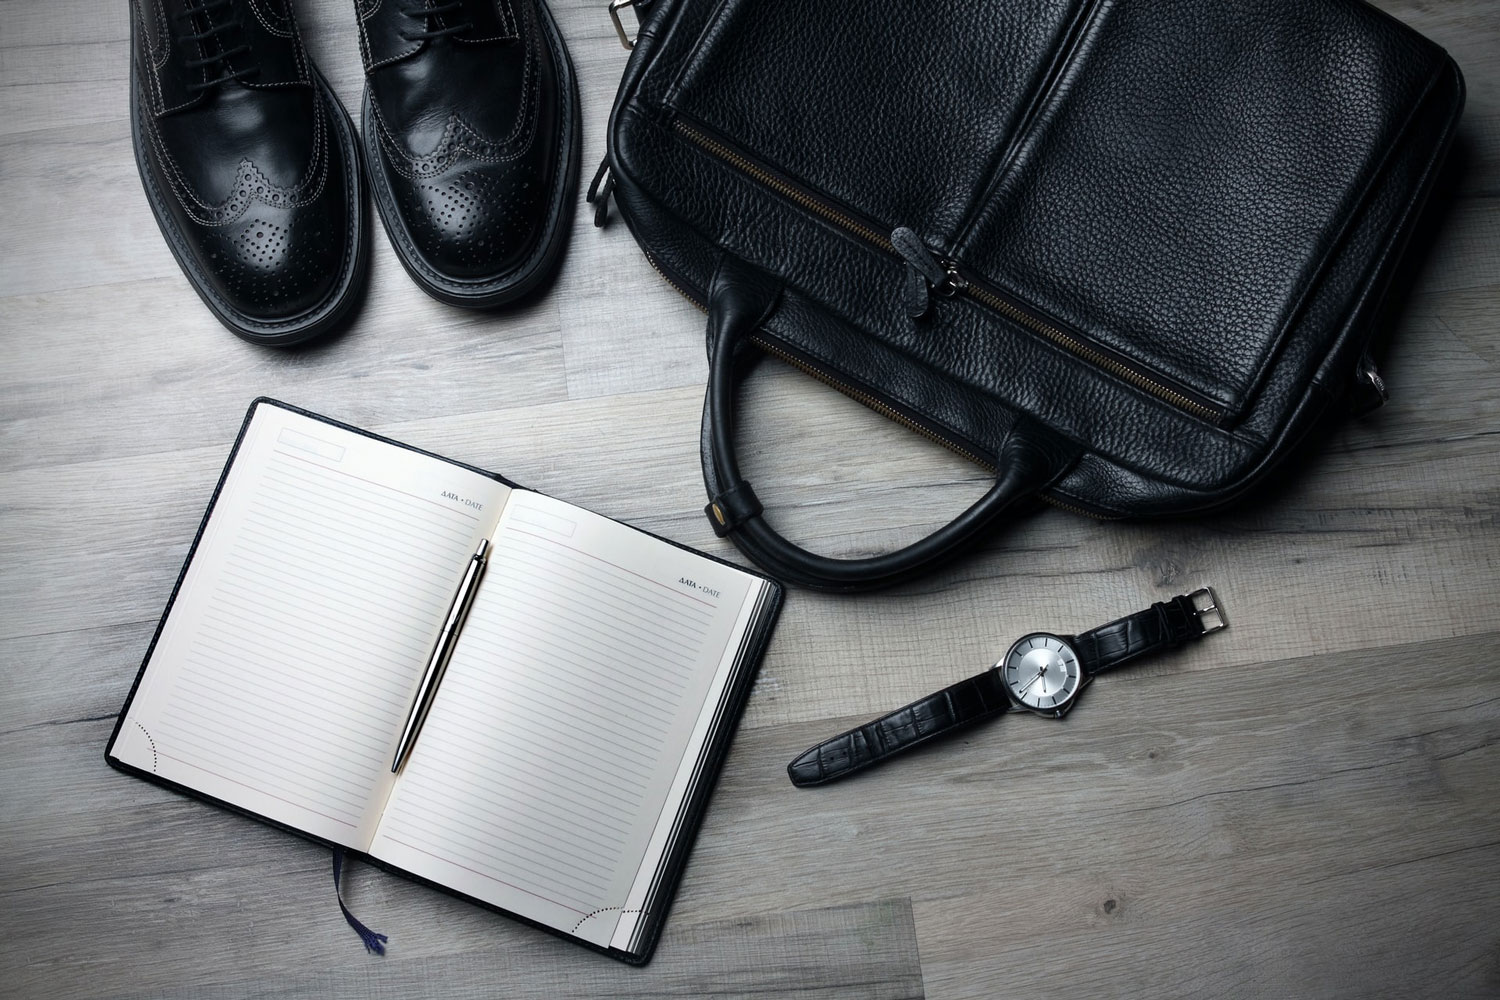 business, work space, note pad, watch, shoes